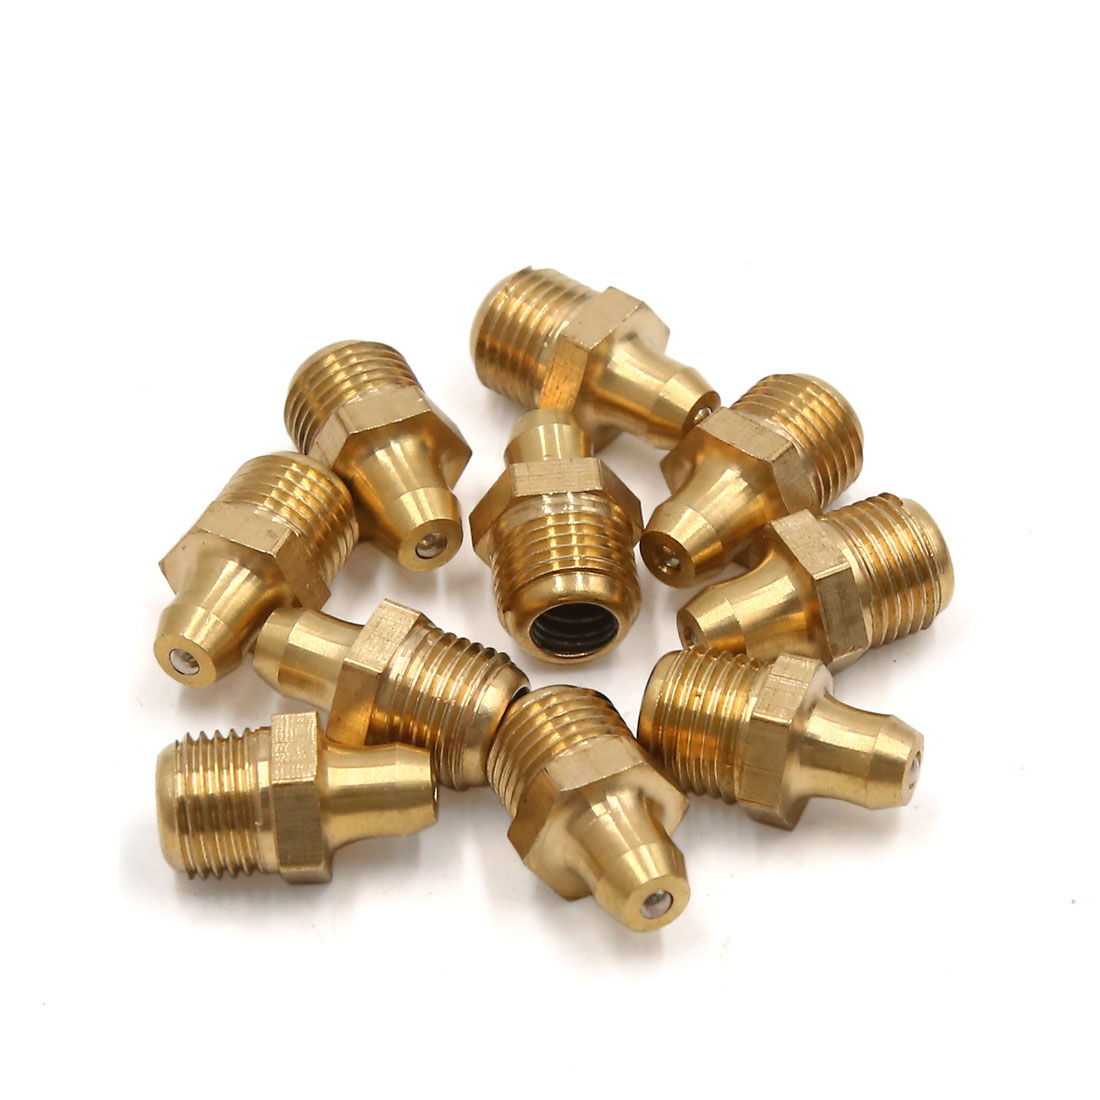 10mm Male Thread Straight Hydraulic Grease Nipple Fitting Gold Tone 10pcs